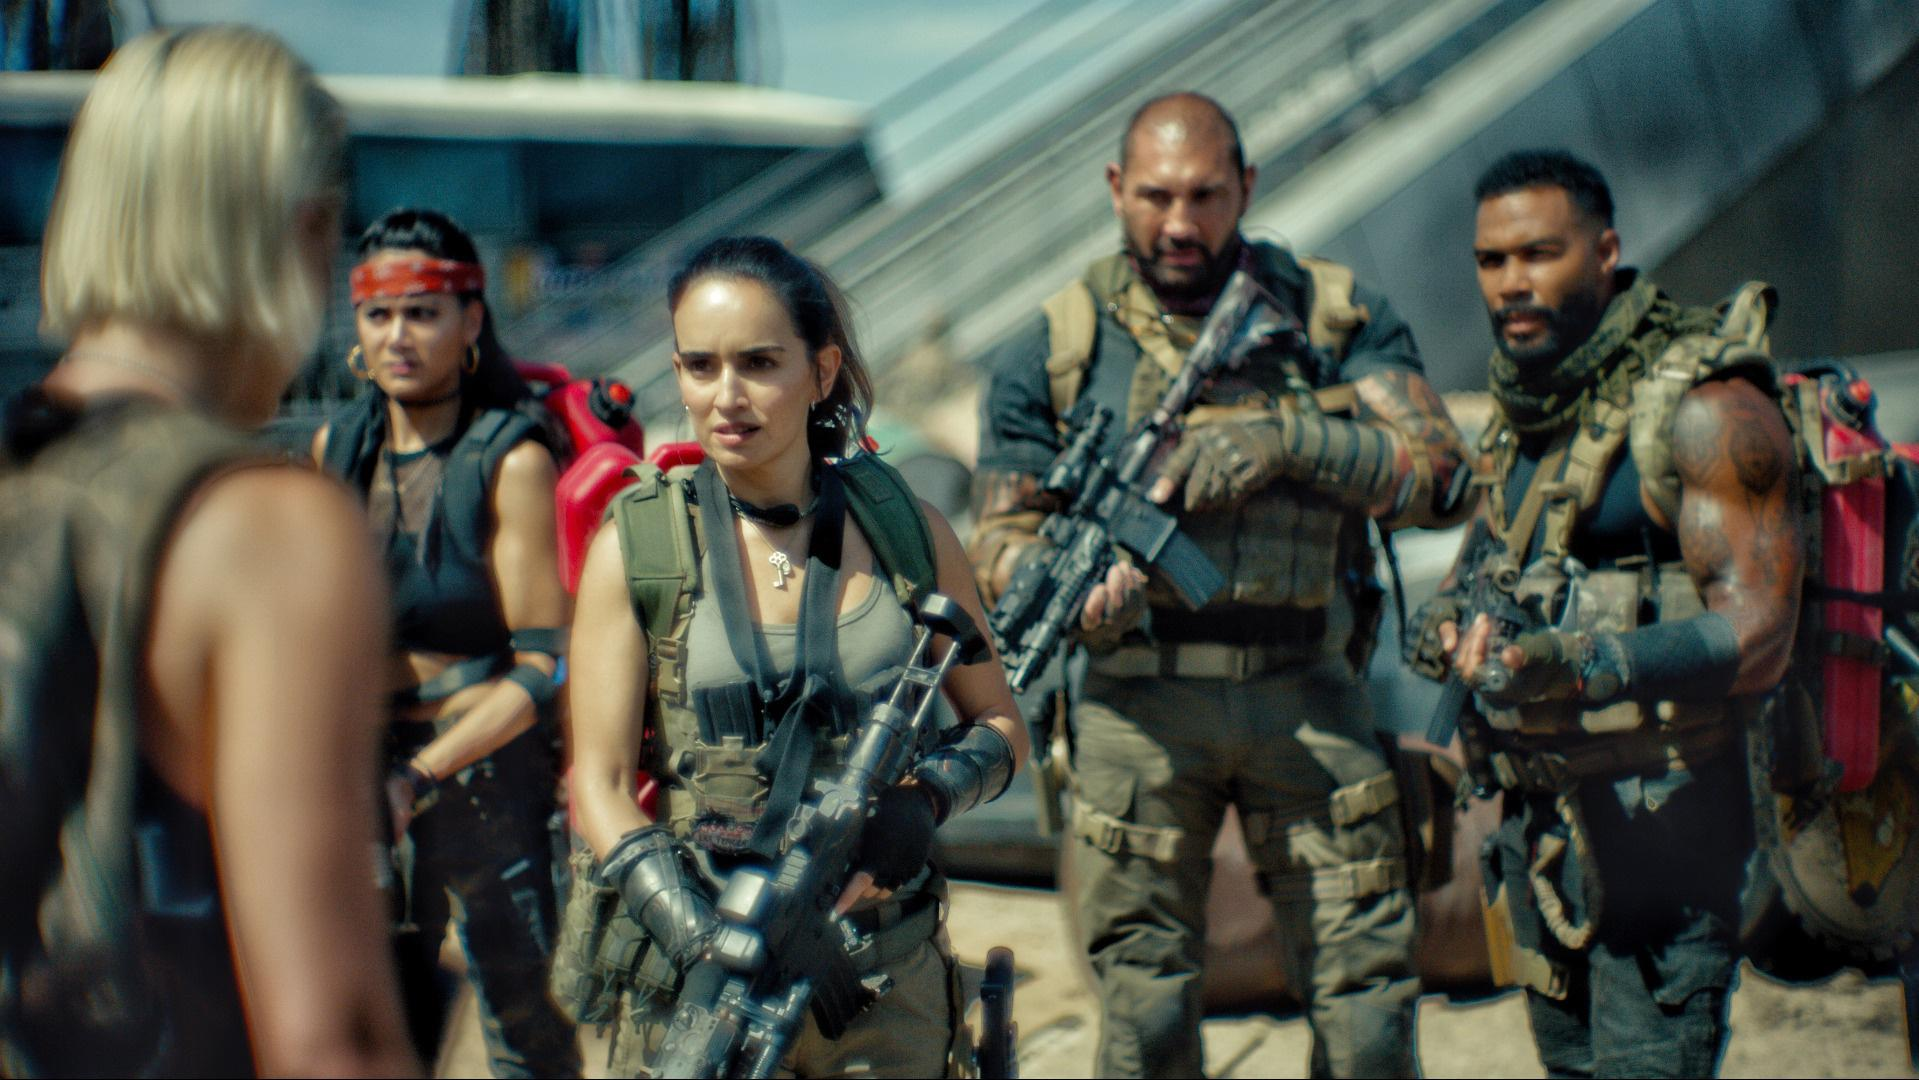 Army of the Dead has a lot going for it, and Zack Snyder has created an epic-scale film filled with eye-popping visuals and plenty of action.